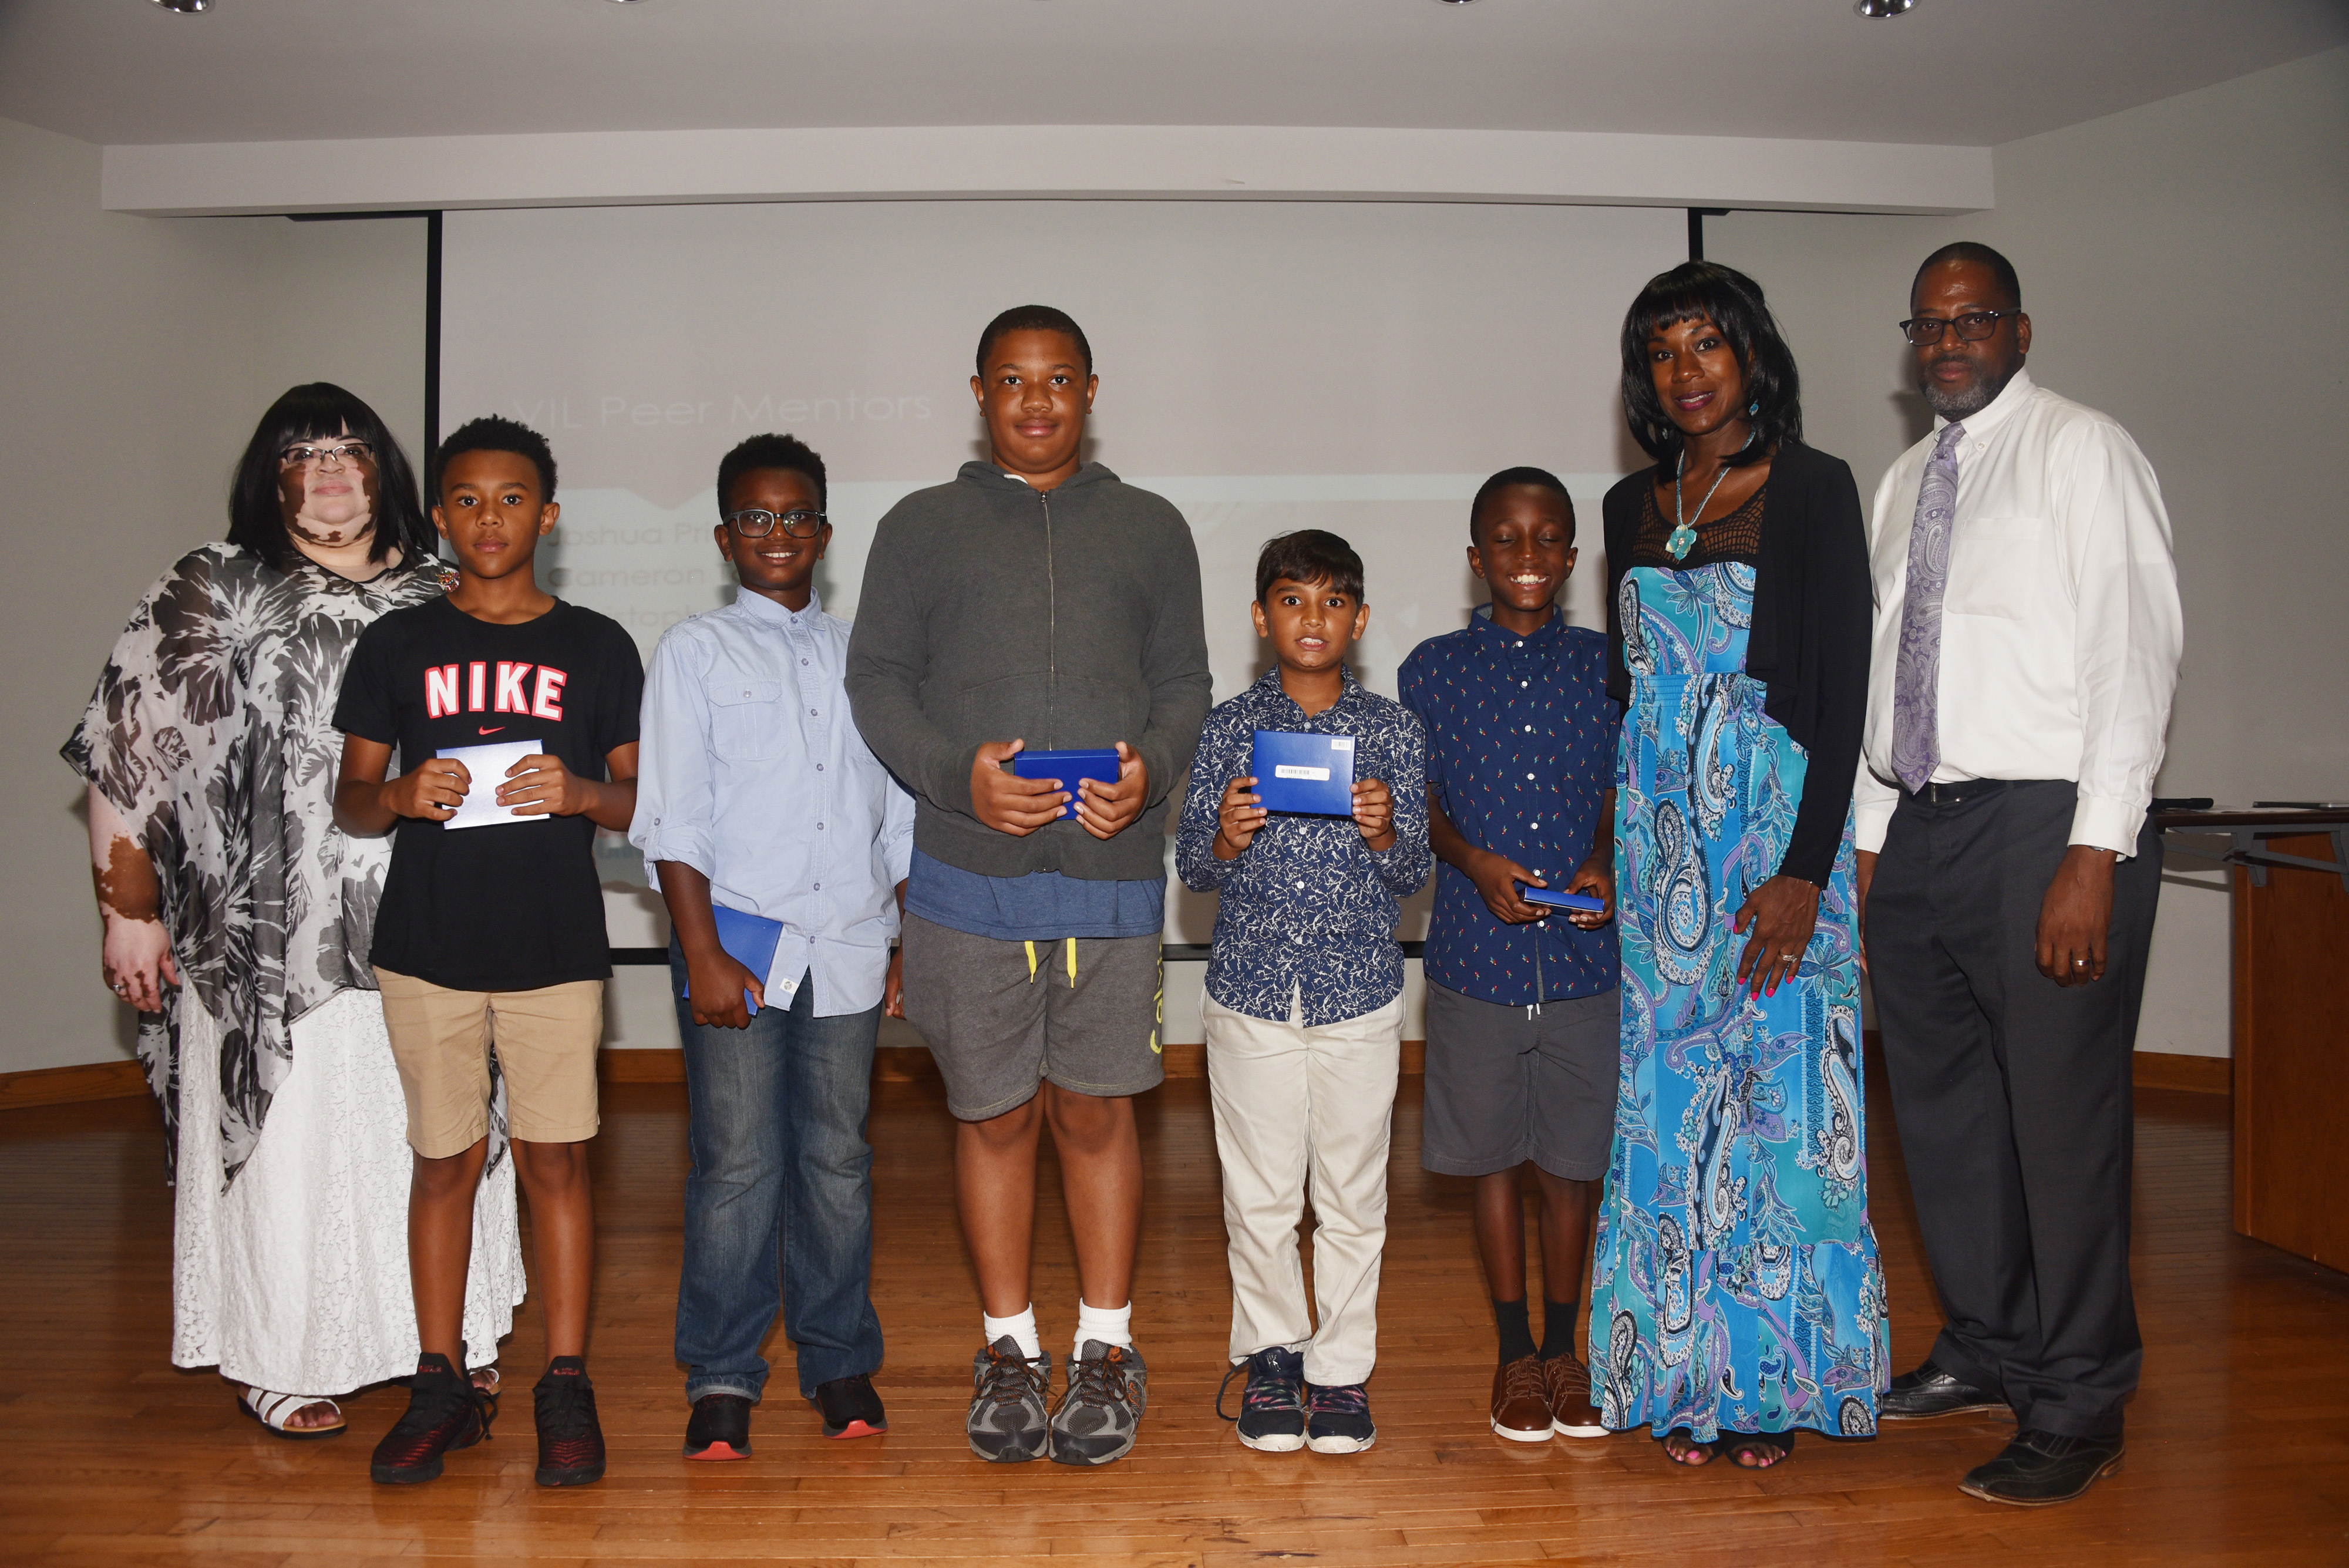 The Verizon Summer Camp's 1st place team -- The Thinkers. (L-r Dr. Charity Shockley, camp director; Thinker team members Xavier Gordy, Christian Auguste, Tristan Cooper, Vraj Shah and Kinte Tolson; and camp co-directors Lillie Crawford and Vaughn Hopkins.